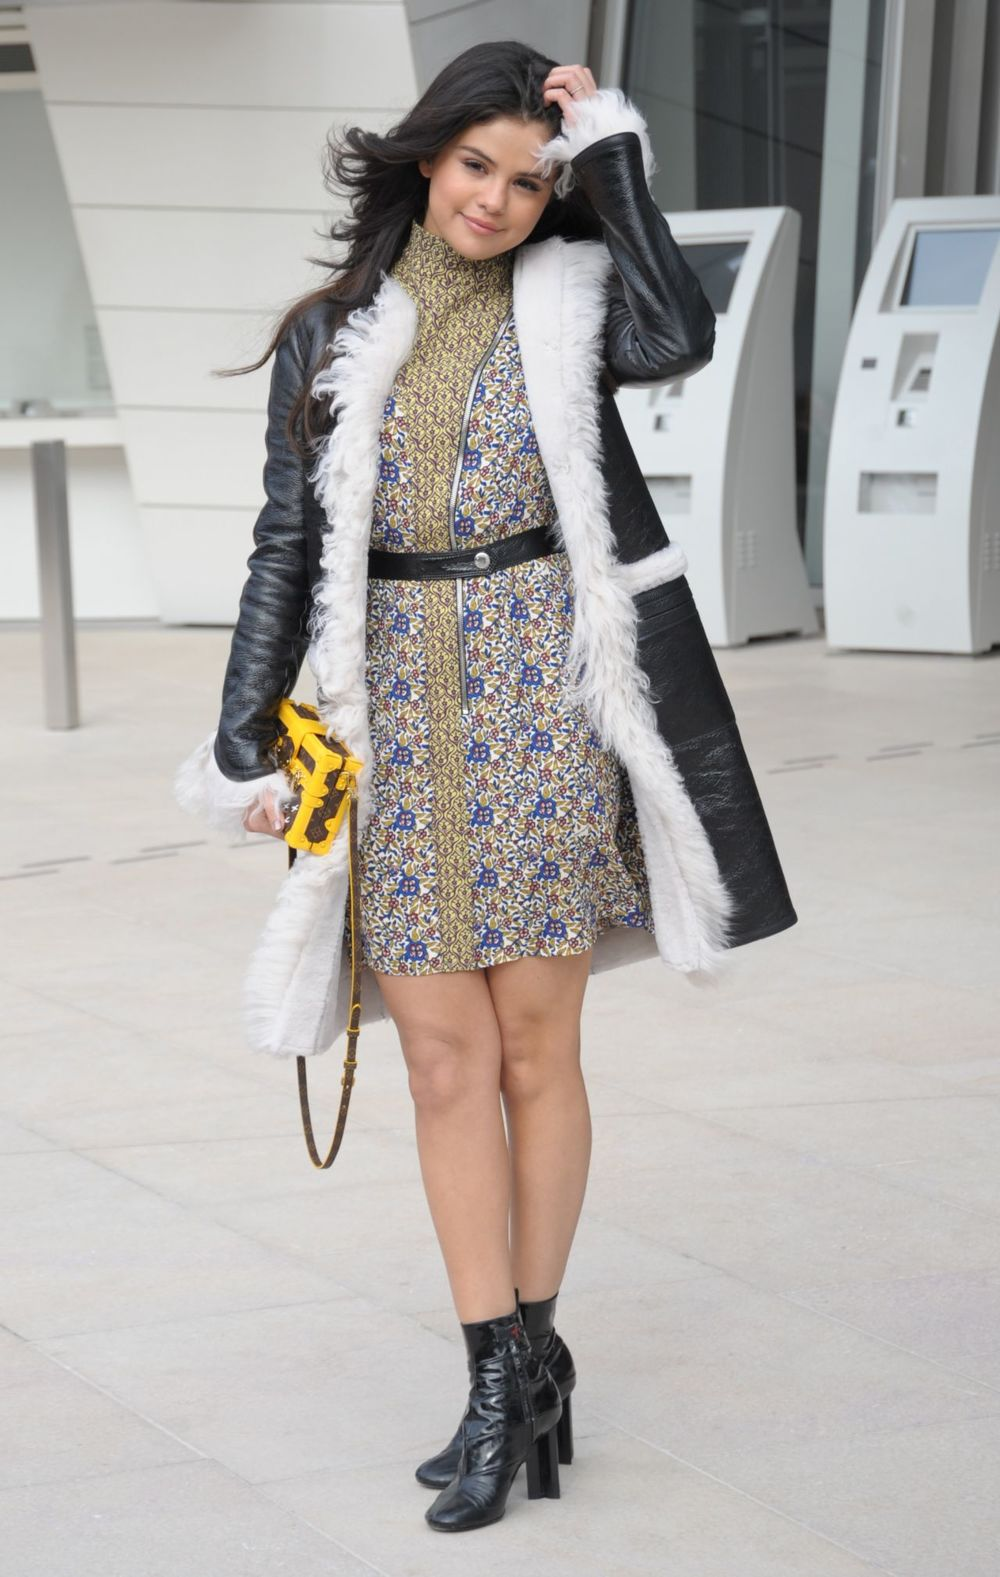 selena-gomez-style-louis-vuitton-fashion-show-in-paris-march-2015_10.jpg